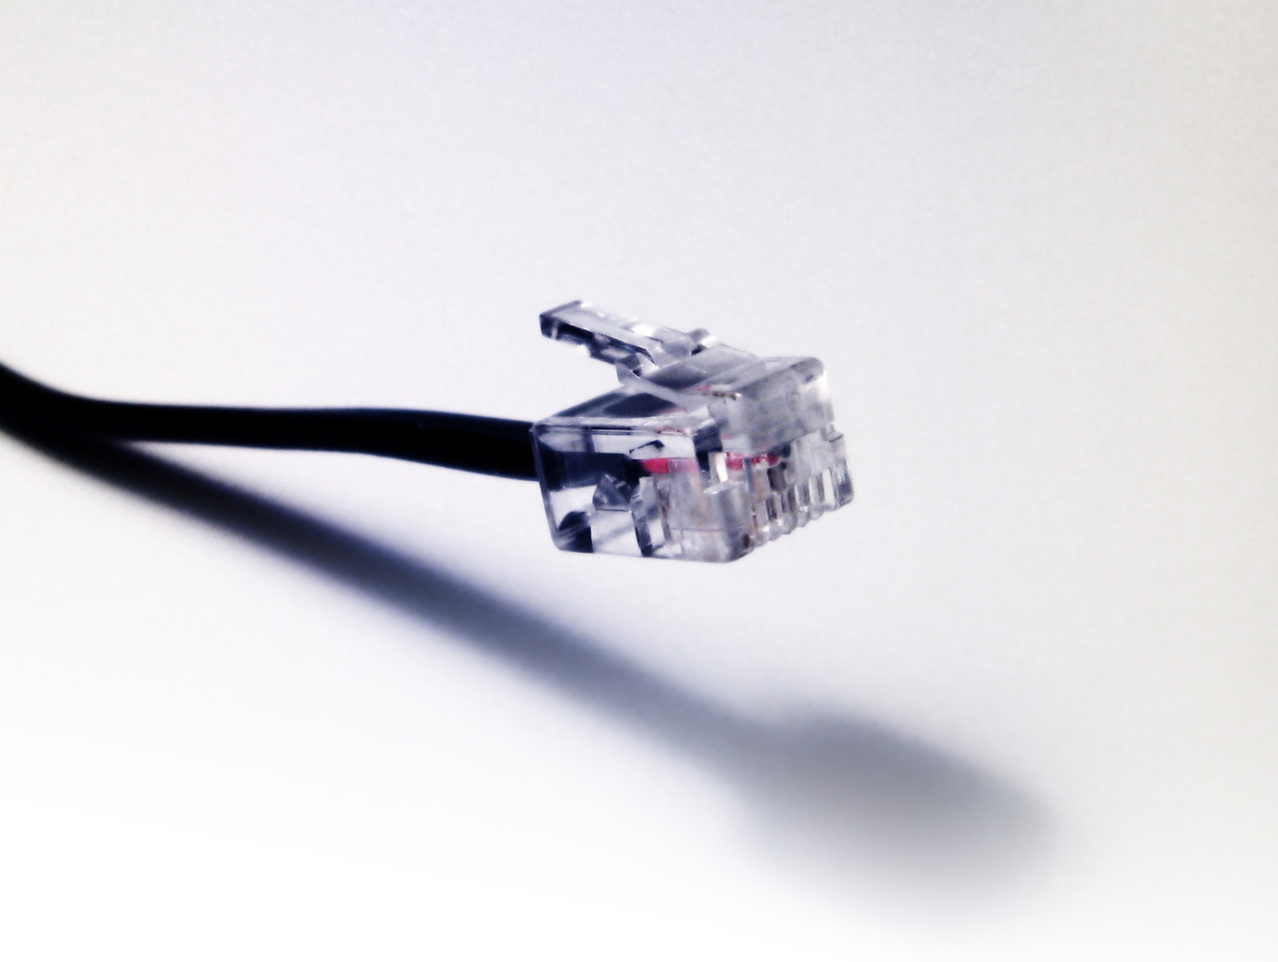 W6 to have fastest broadband technology